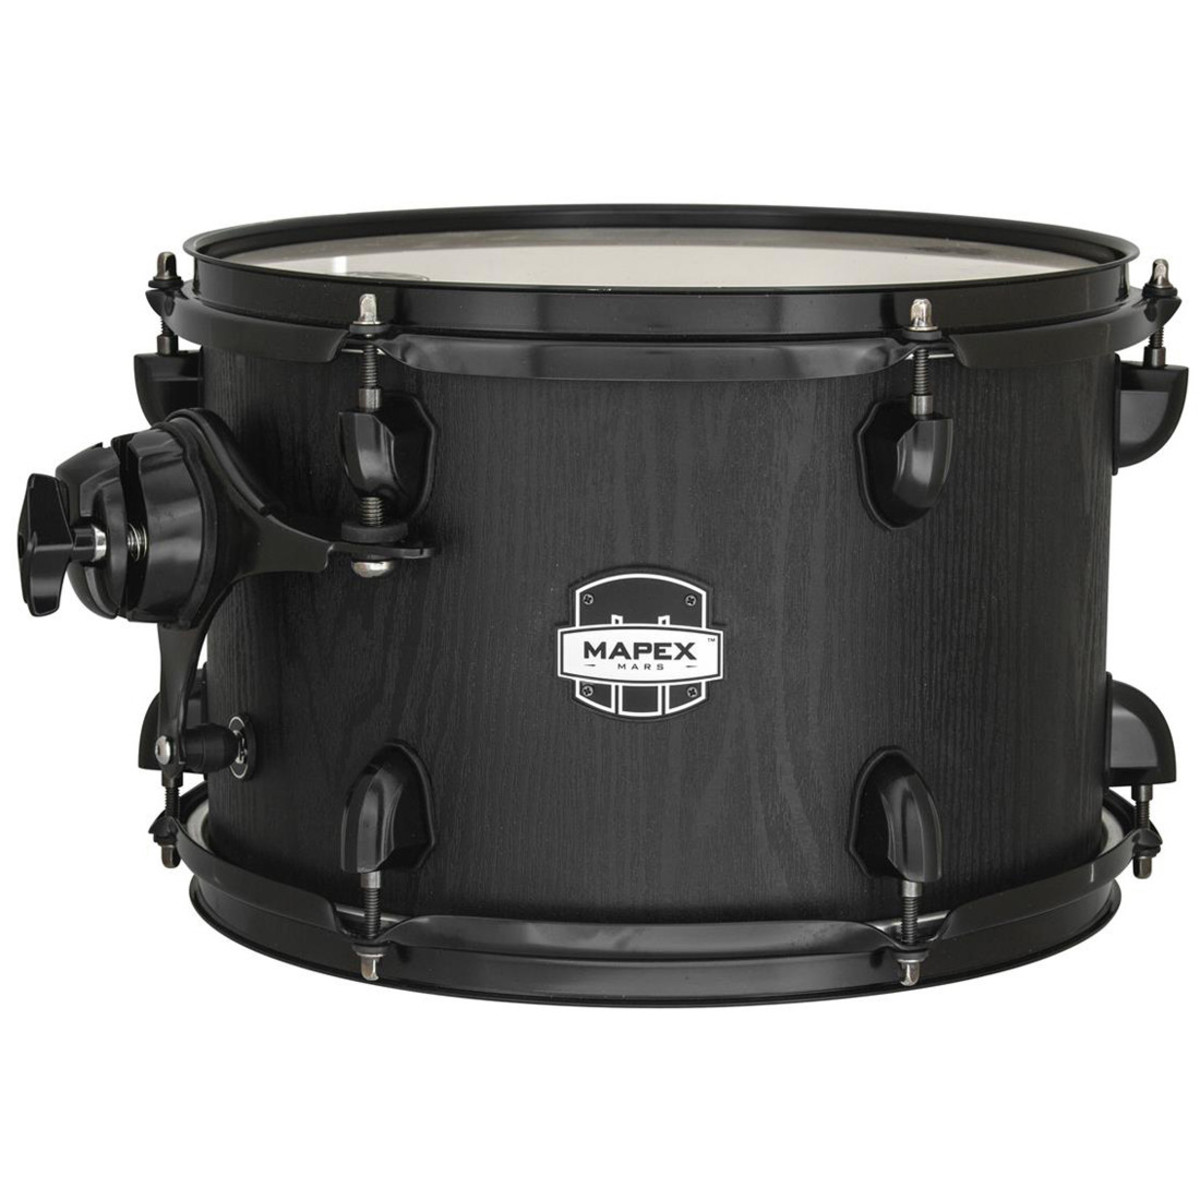 mapex mars 528 crossover retro fusion 22 39 39 5 pc drum kit nightwood at gear4music. Black Bedroom Furniture Sets. Home Design Ideas